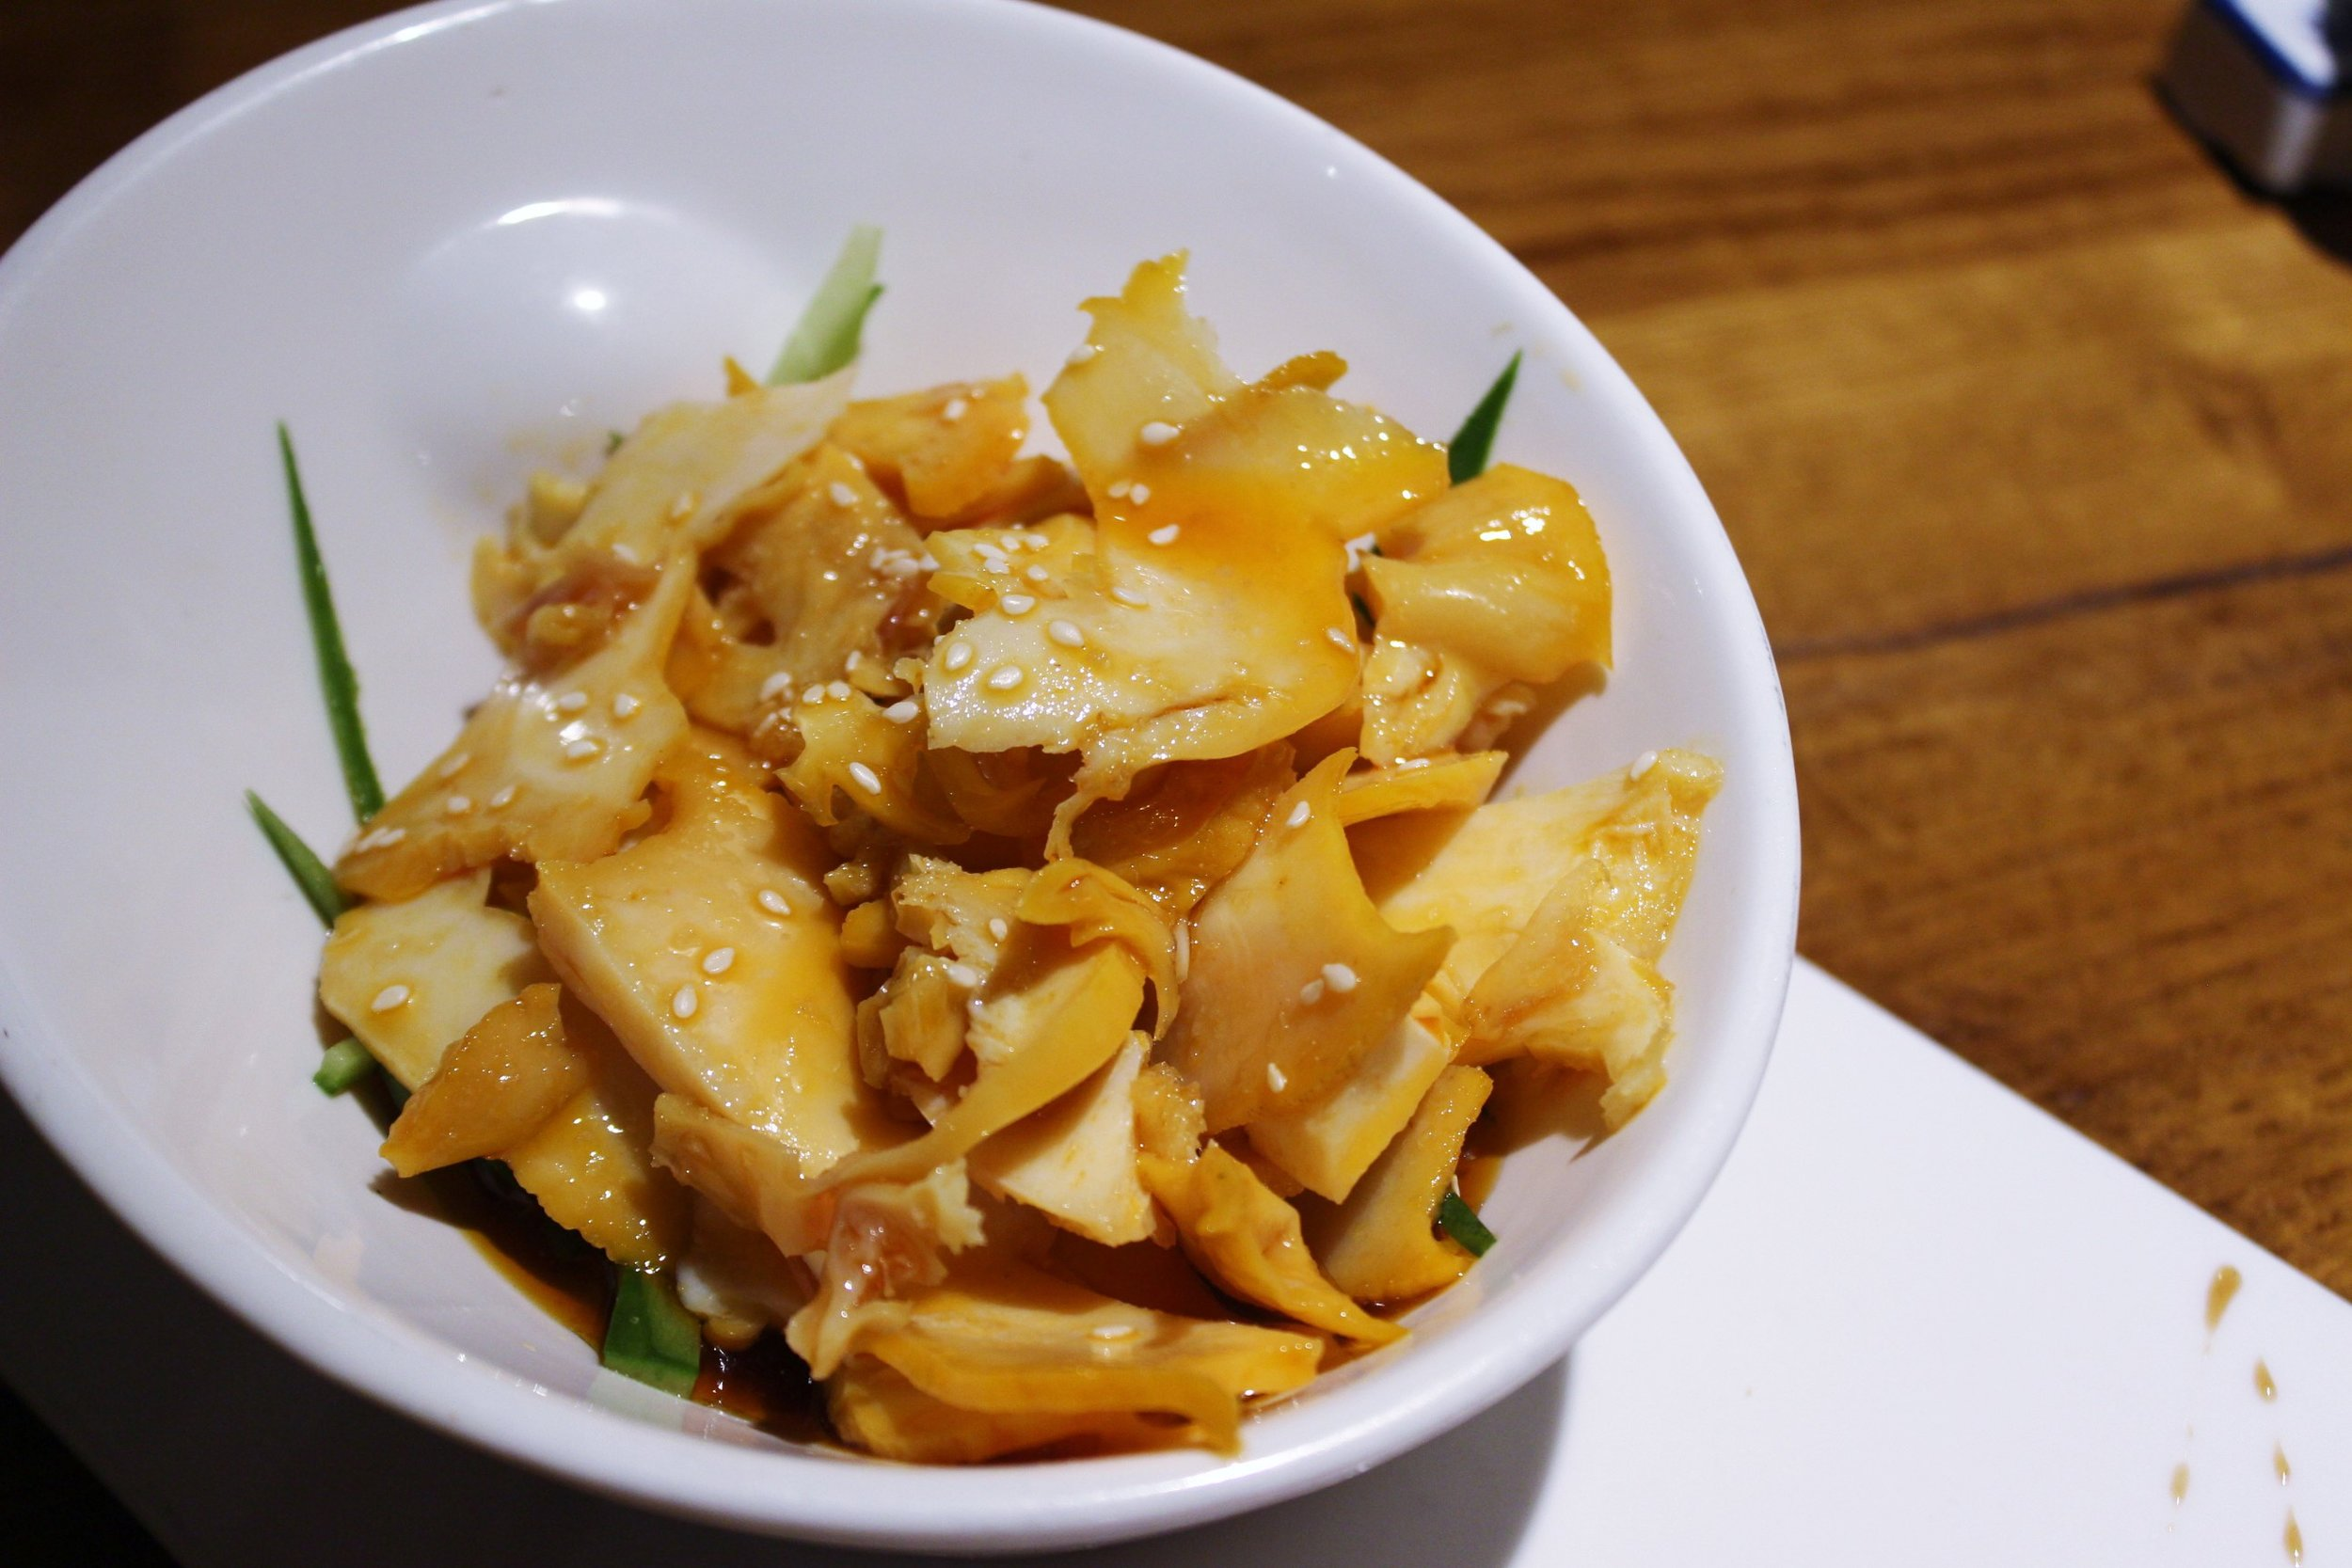 Thin Sliced Conch with Roasted Chili Vinaigrette at Szechuan Mountain House